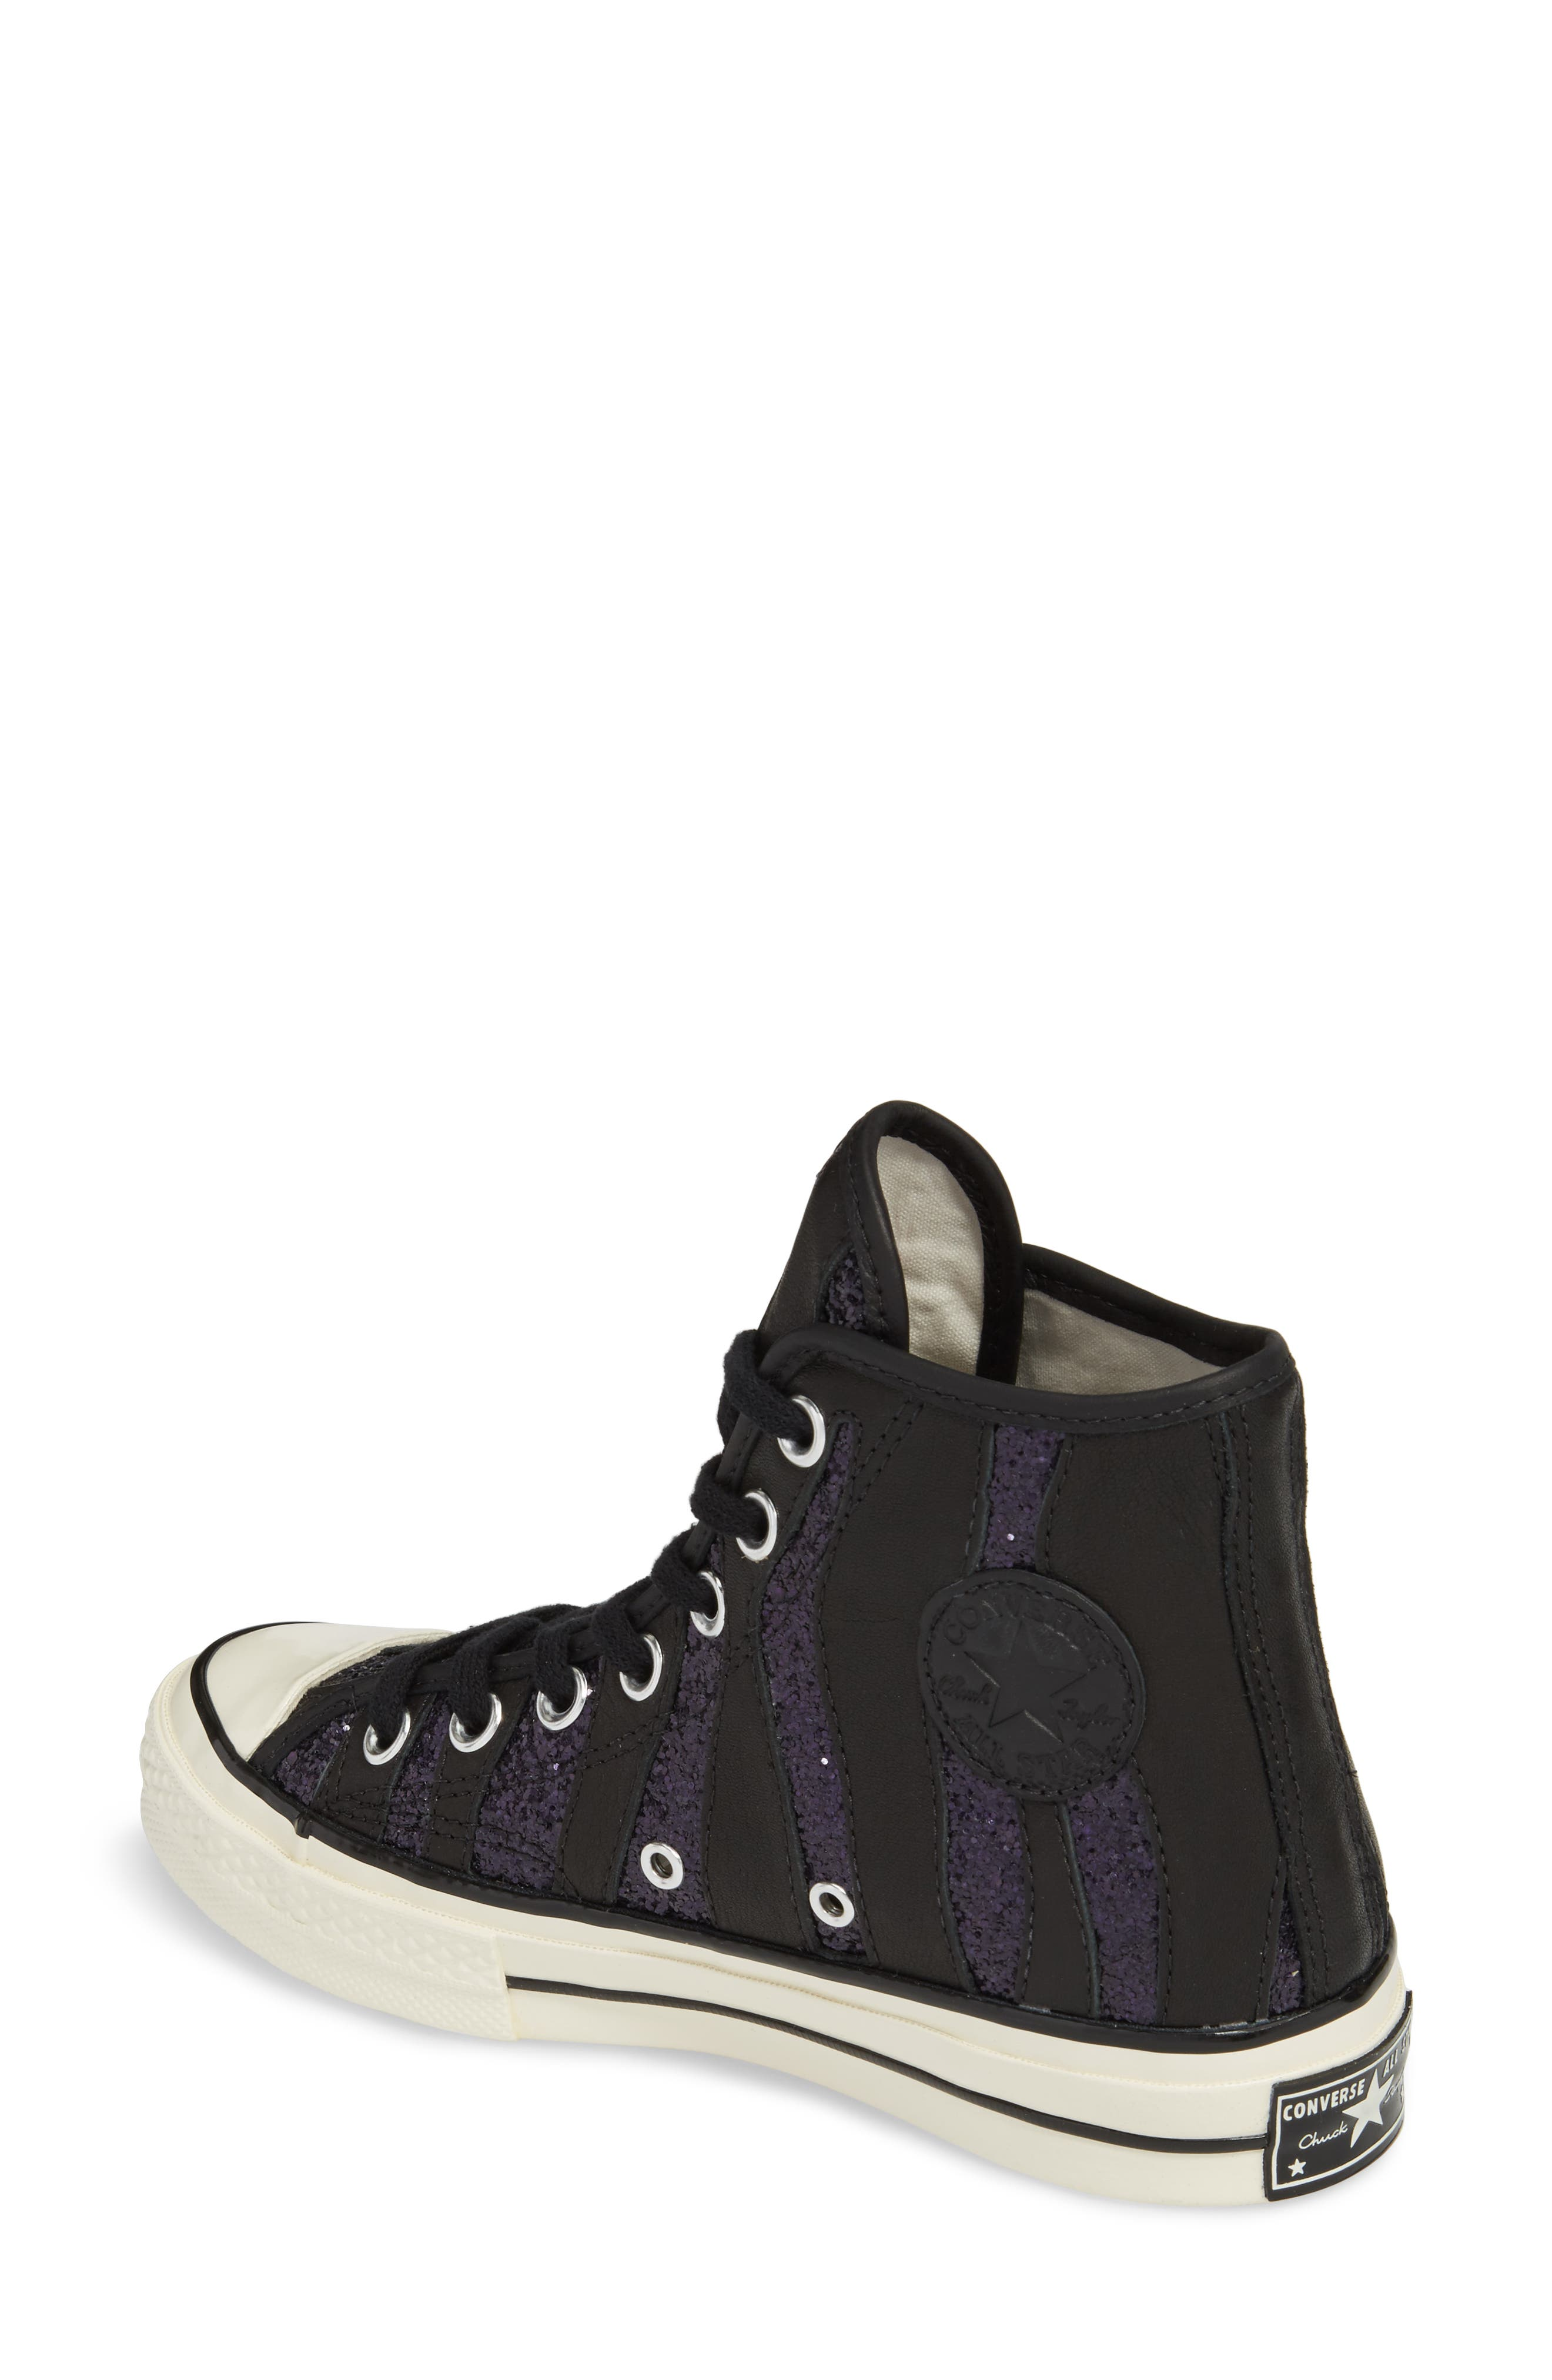 Chuck Taylor<sup>®</sup> All Star<sup>®</sup> 70 Animal Glitter High Top Sneaker,                             Alternate thumbnail 2, color,                             Black